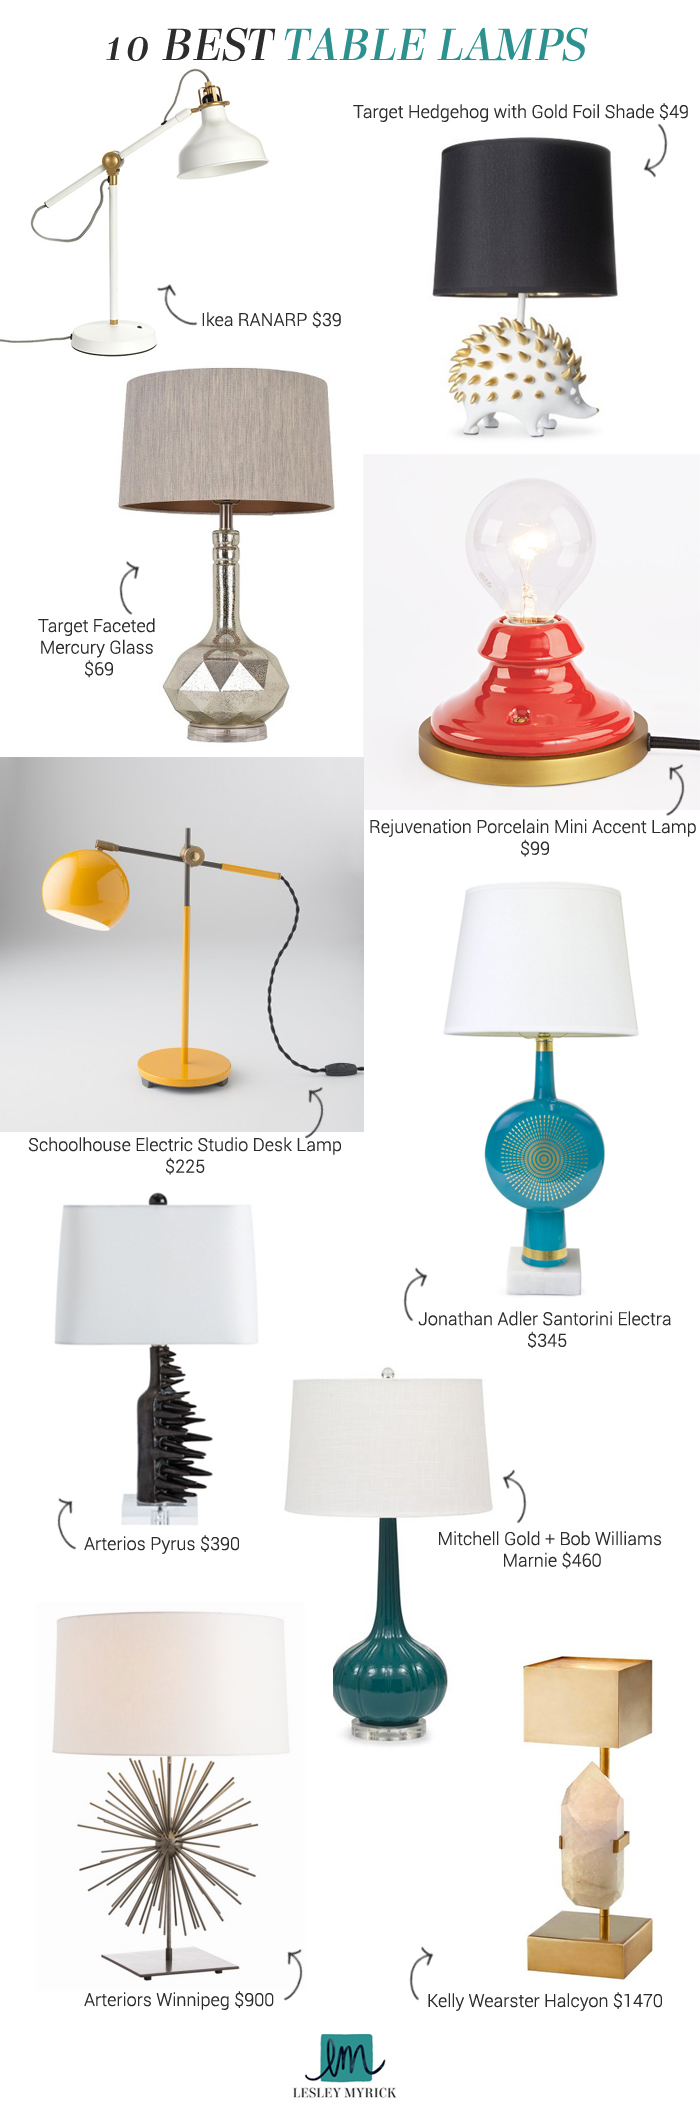 Lesley's Picks: 10 Best Table Lamps